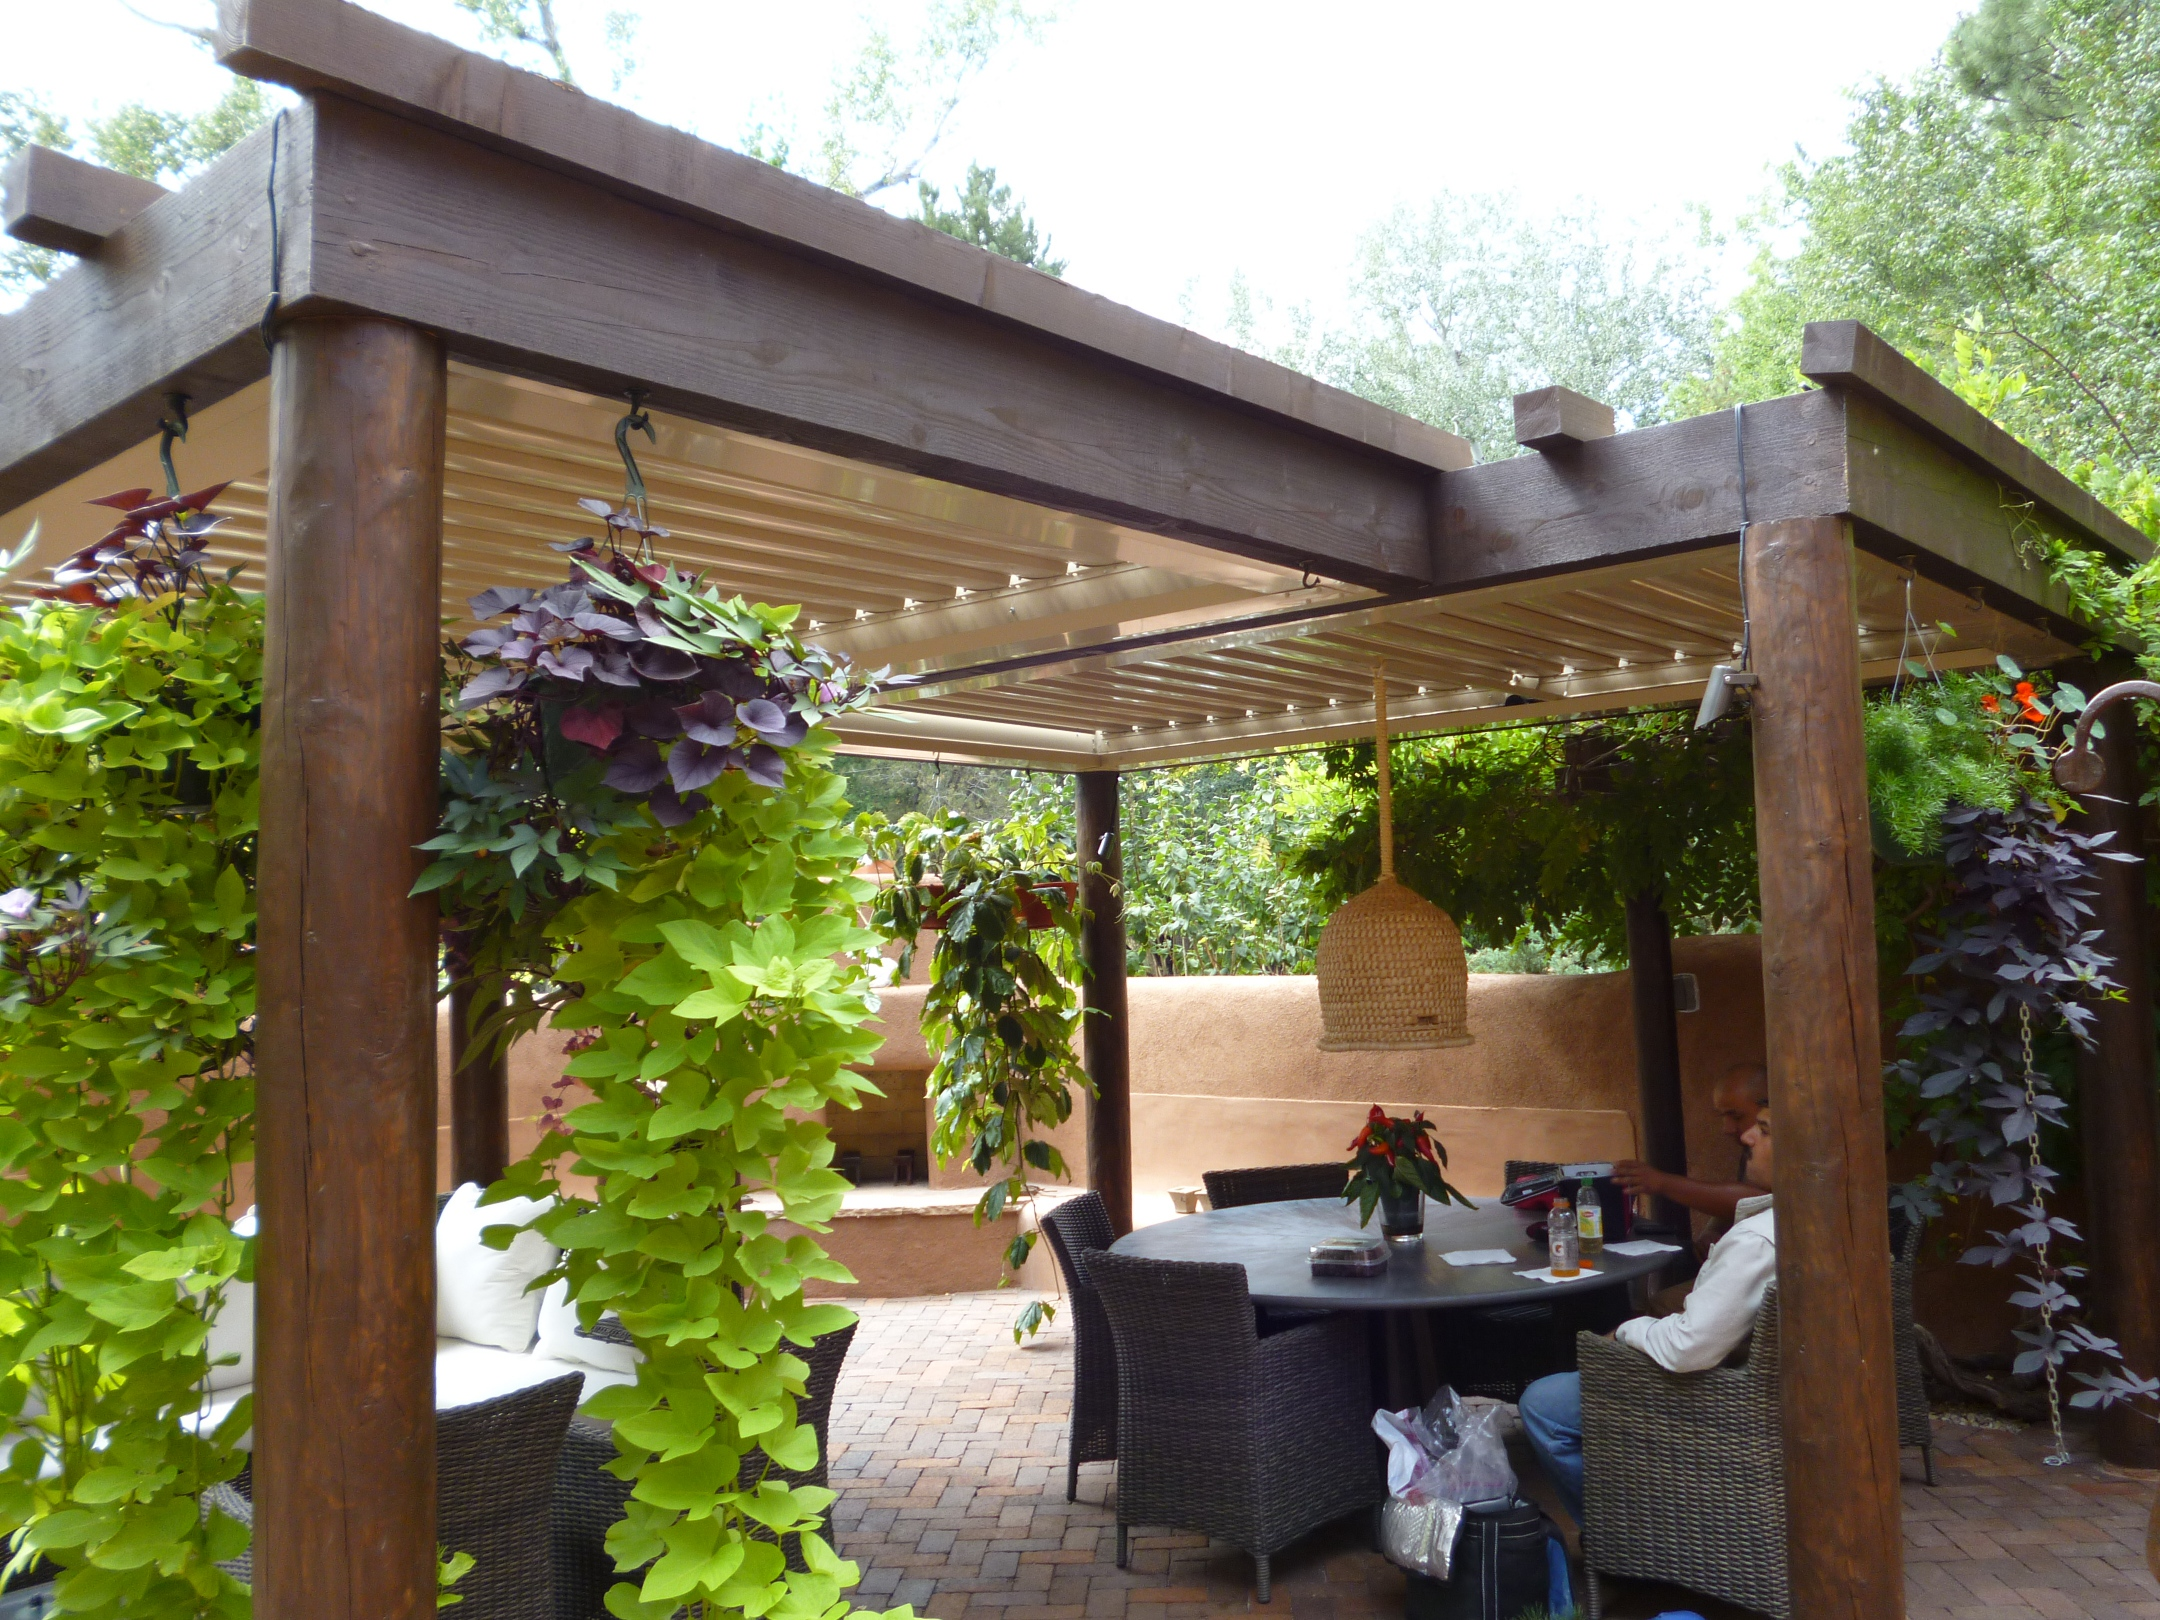 Natural Wooden Patio Covers - HomesFeed on Patio Cover Ideas id=22683